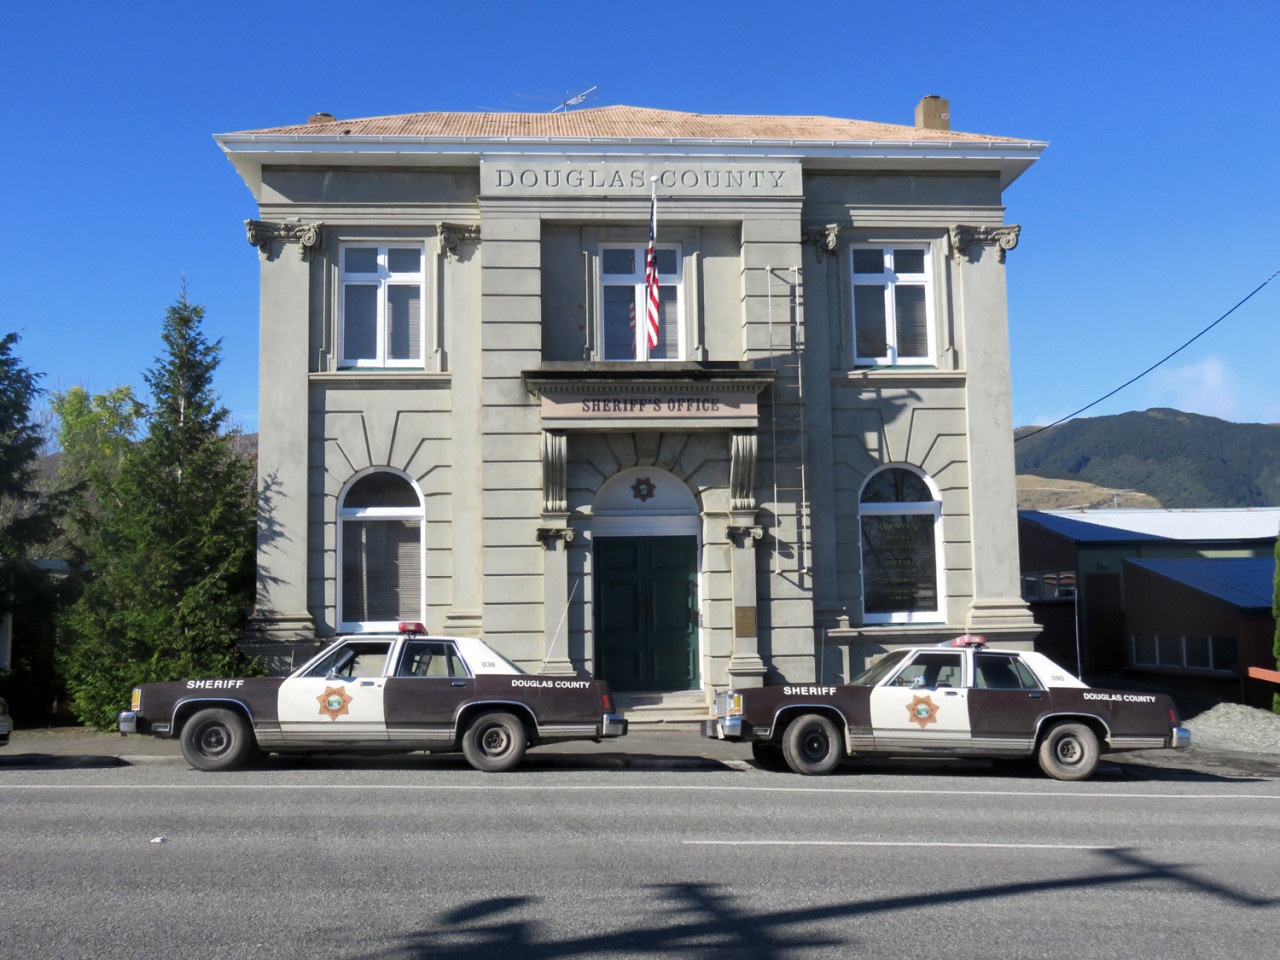 The former Bank of New Zealand building became the Douglas County Sheriff's Office (complete with American cop cars).